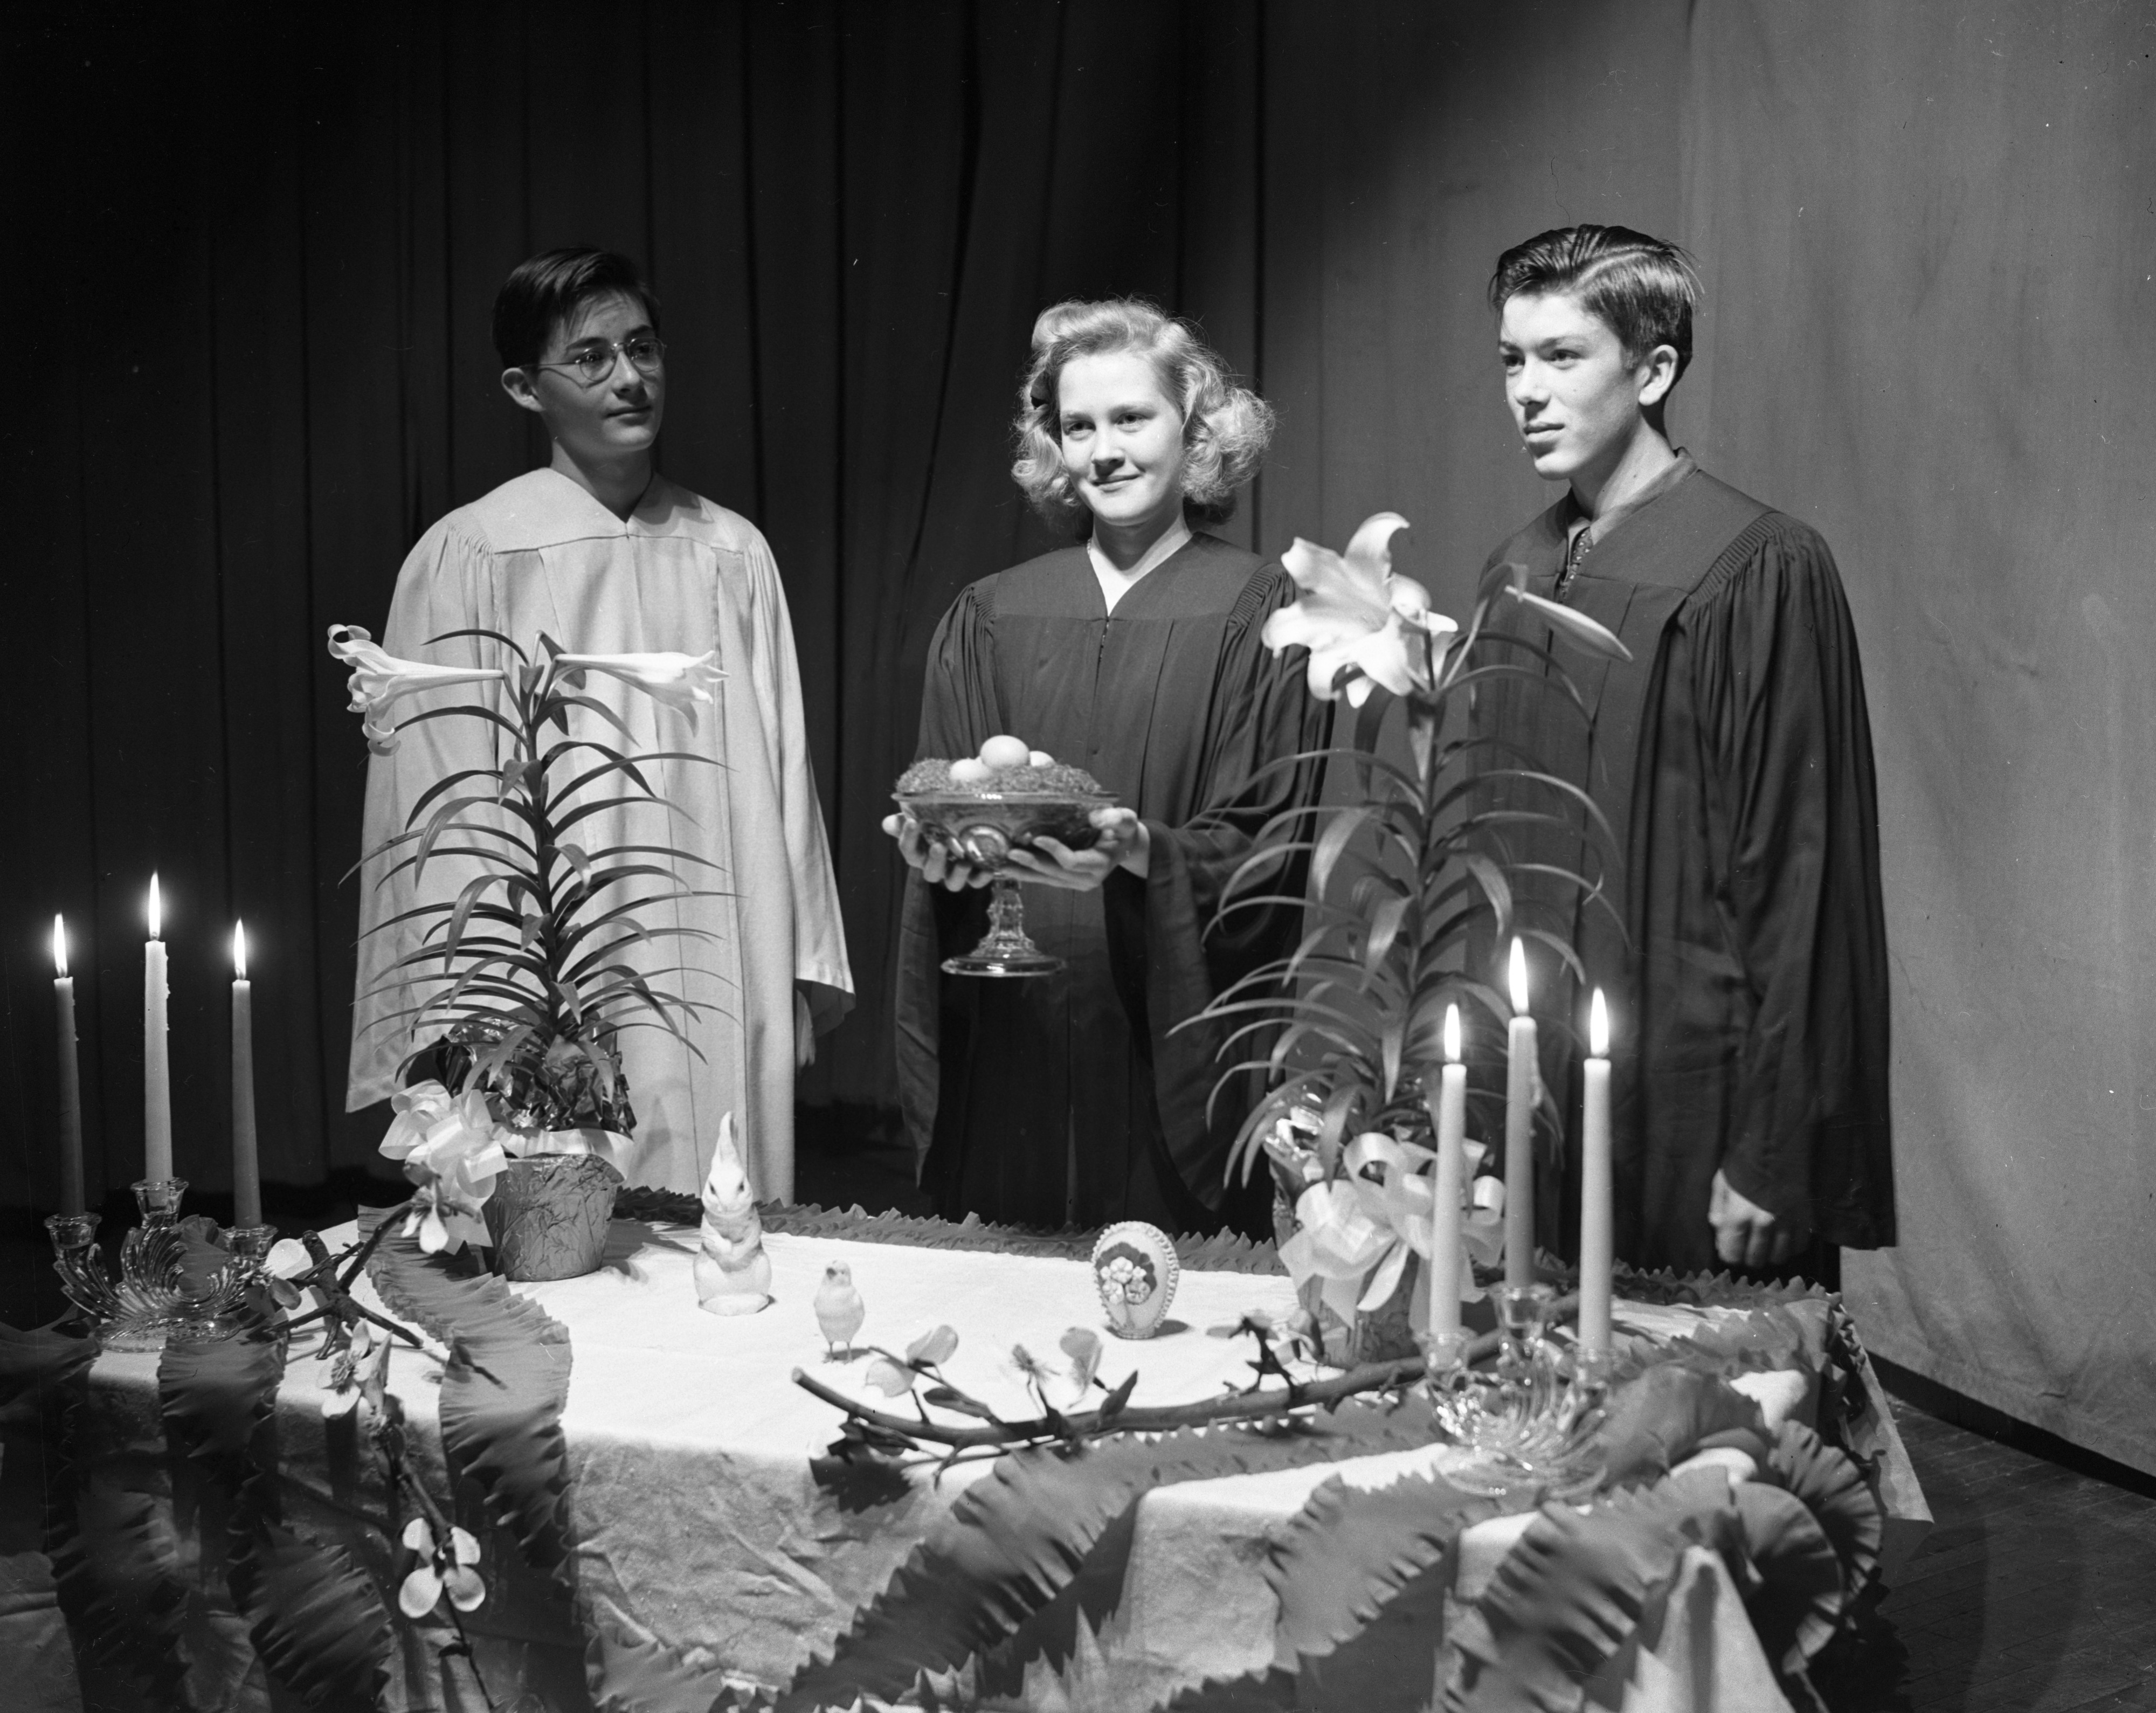 Tappan students Konrad Matthaei, Anne Waterman and William Godfrey explain Easter symbols during school assembly, April 1944 image